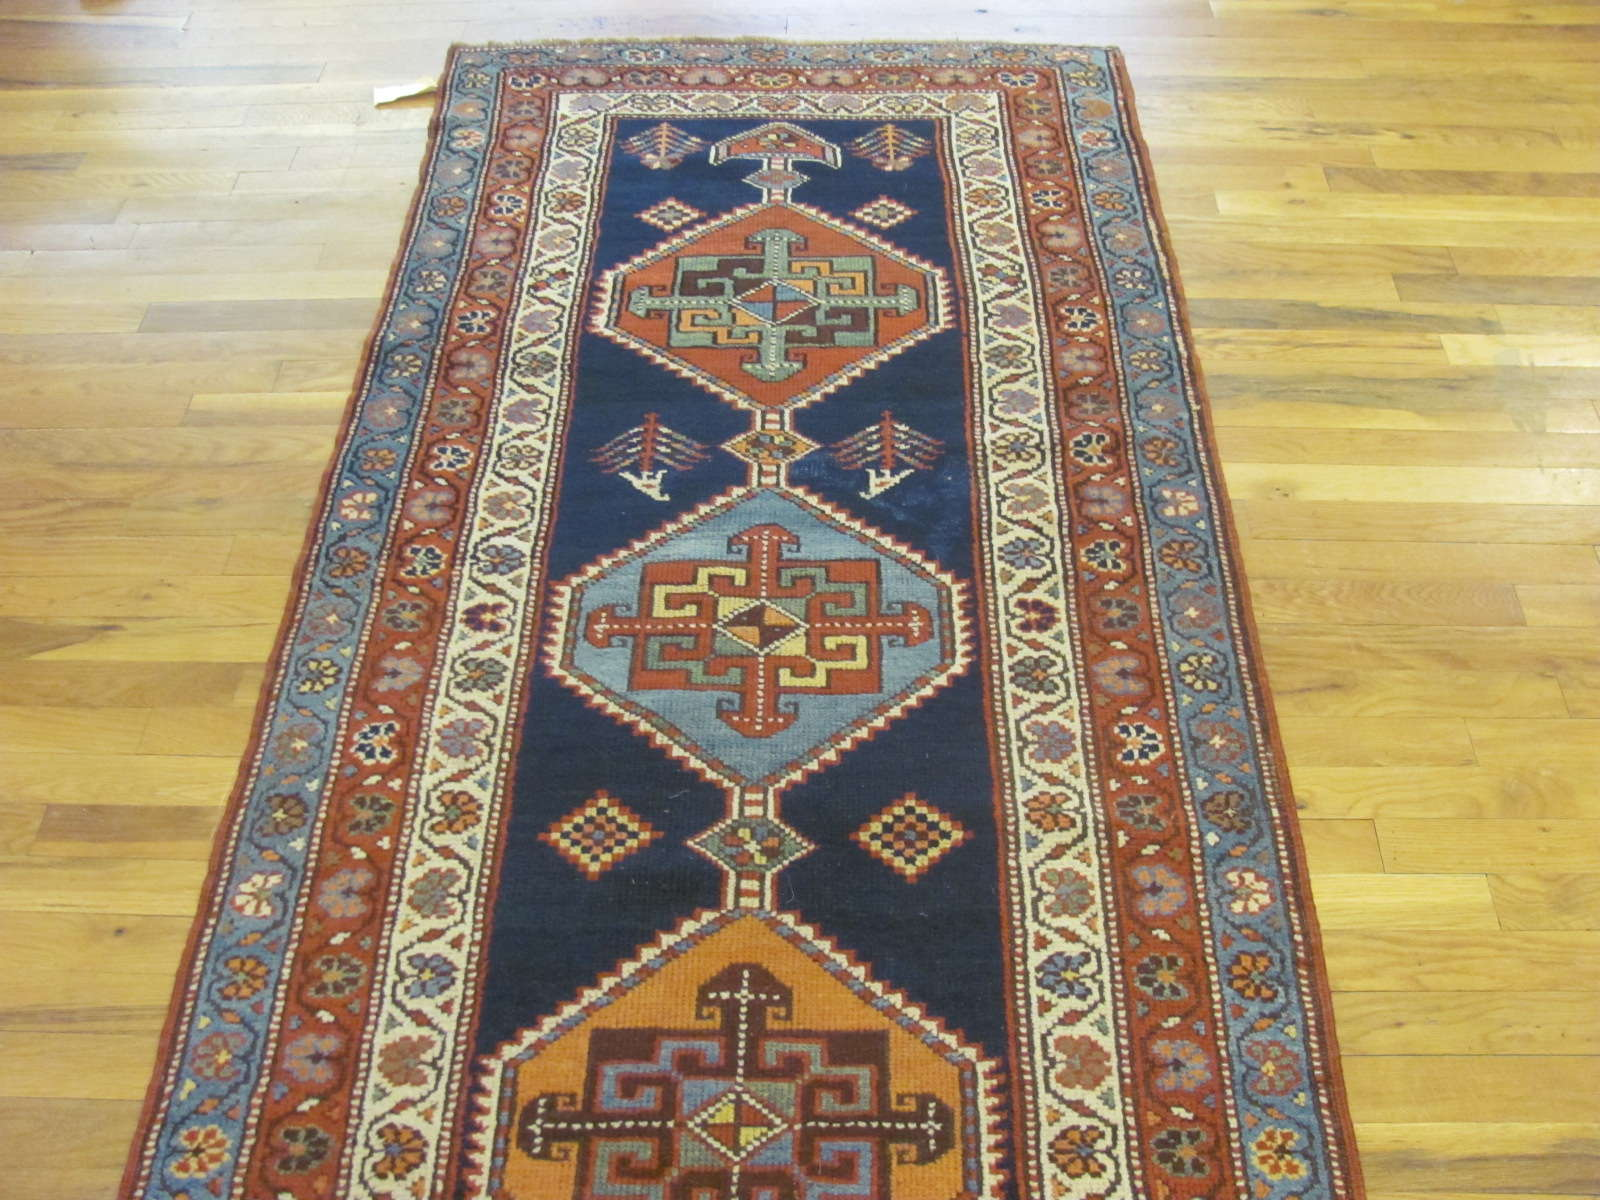 24824 antique persian nw kurd runner 3,2x13,7-1